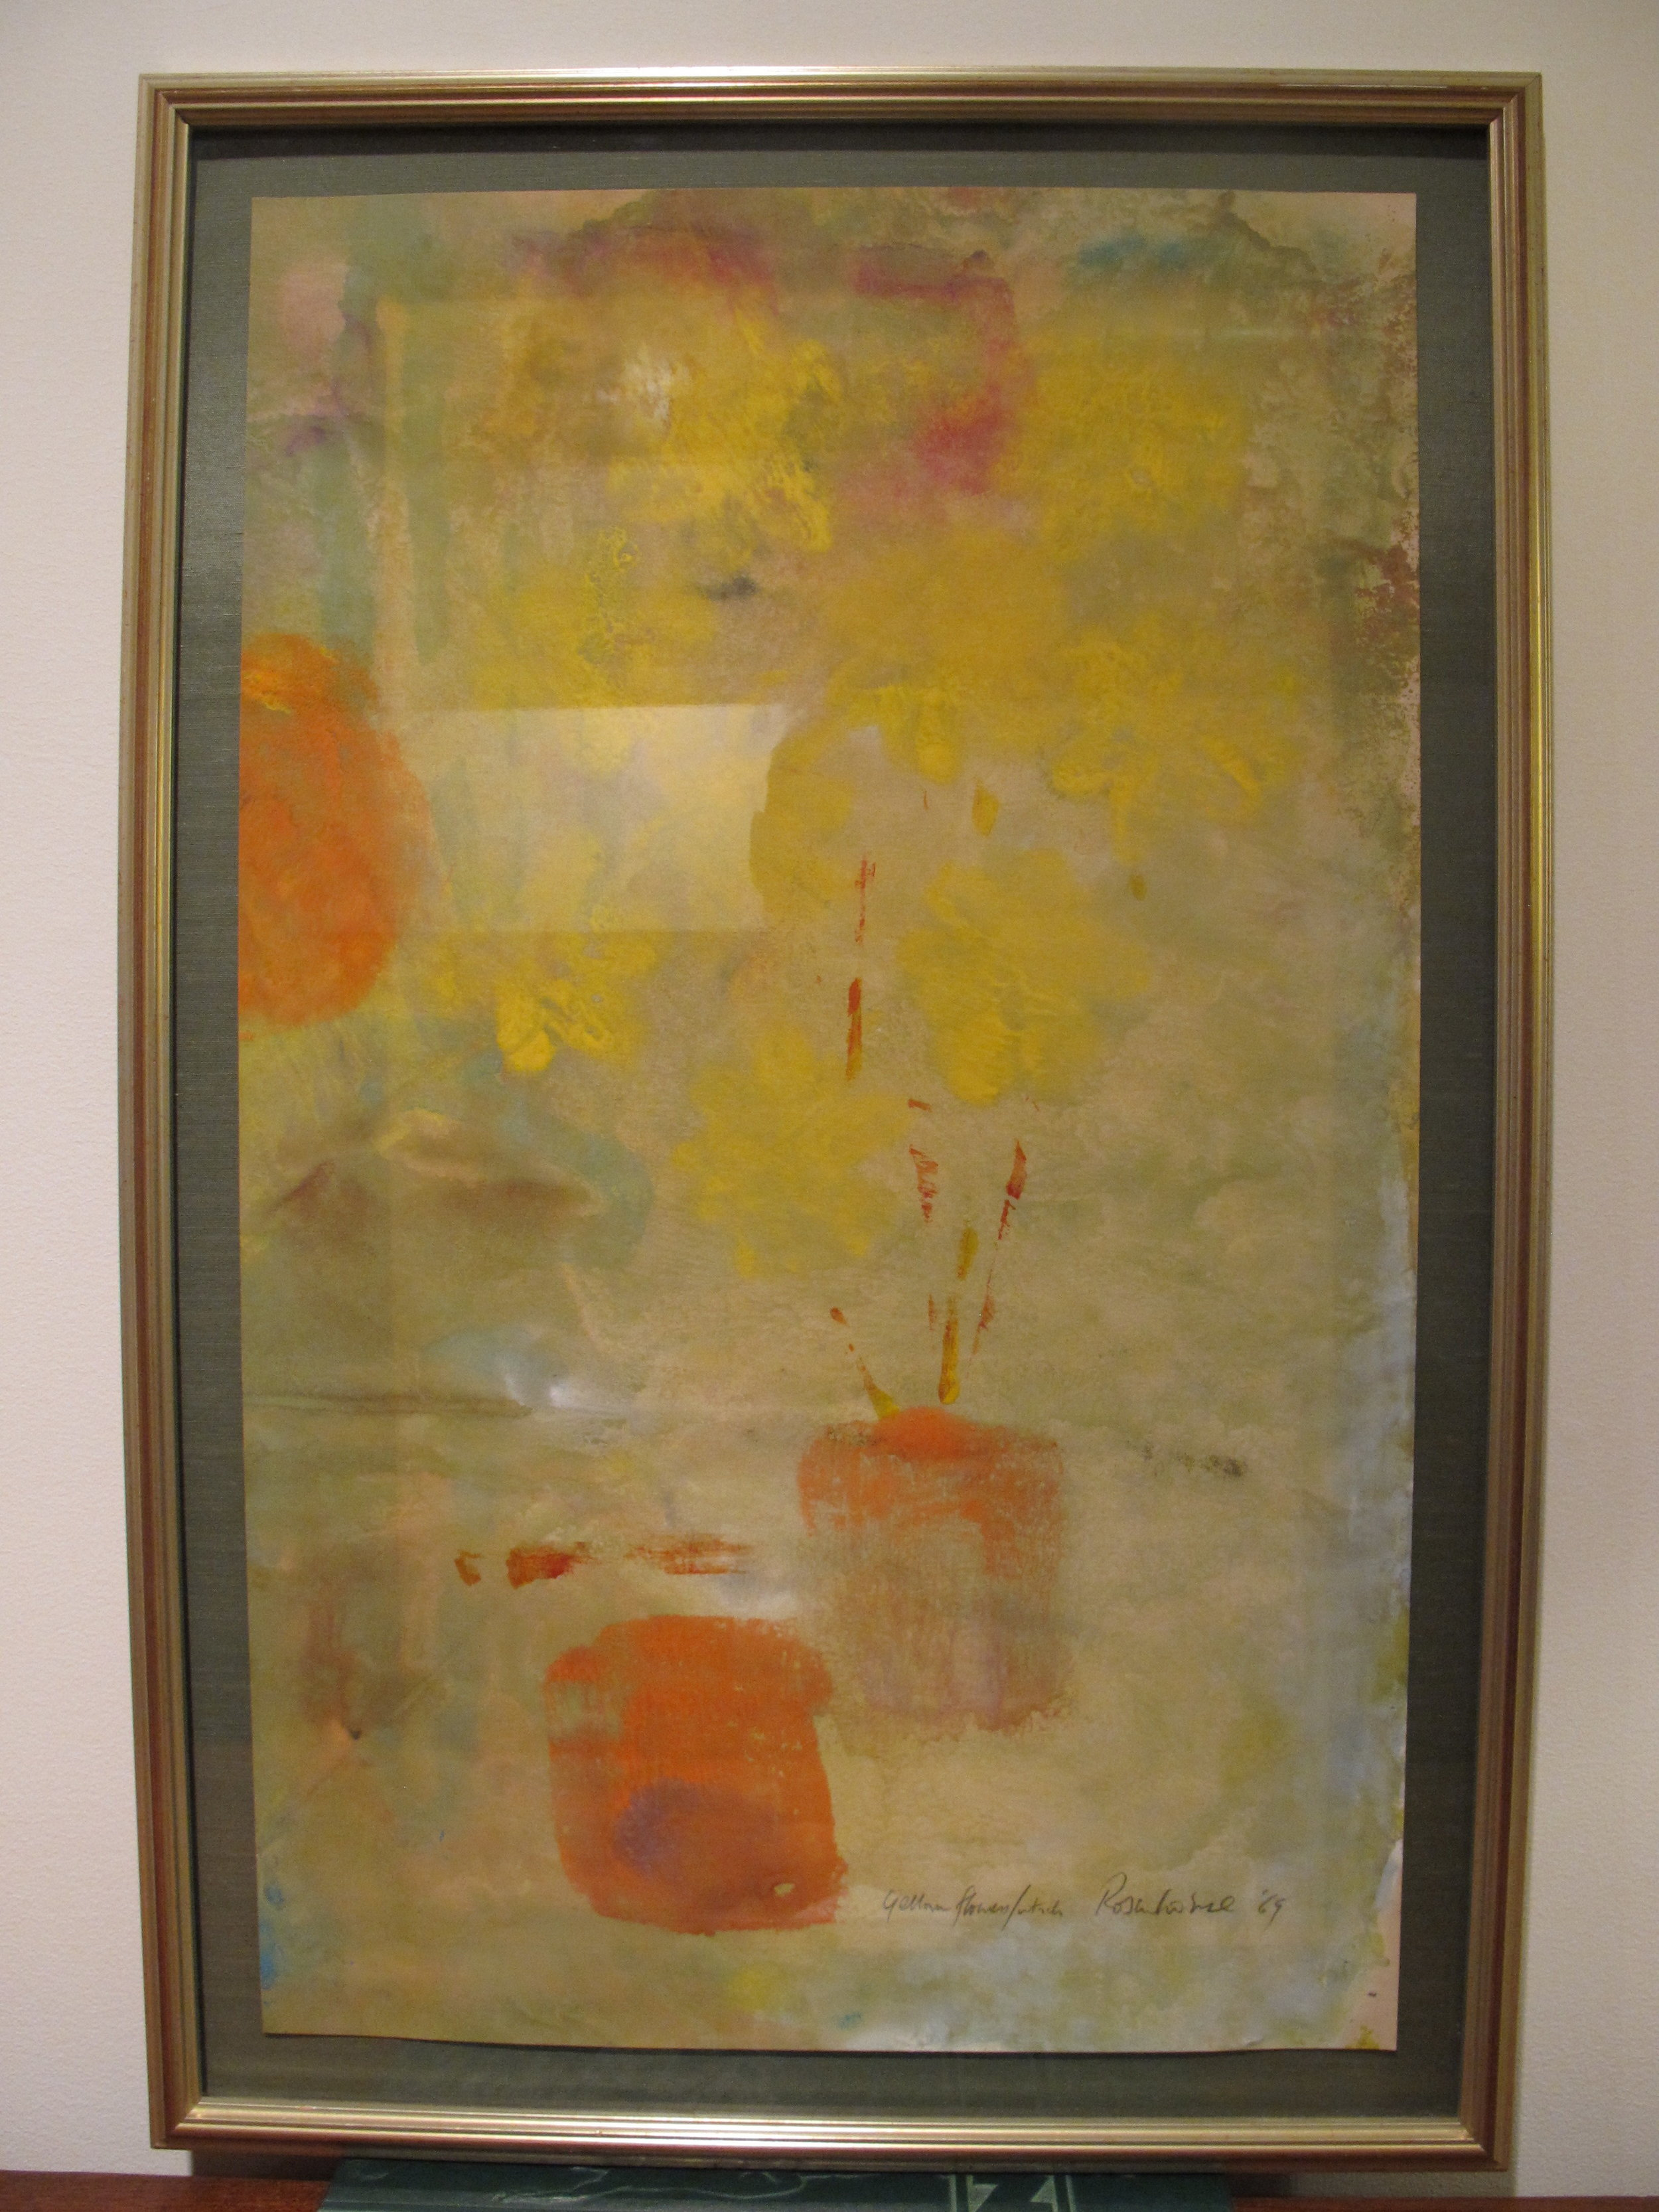 MID CENTURY WATERCOLOR ABSTRACT BY IRWIN ROSENHOUSE